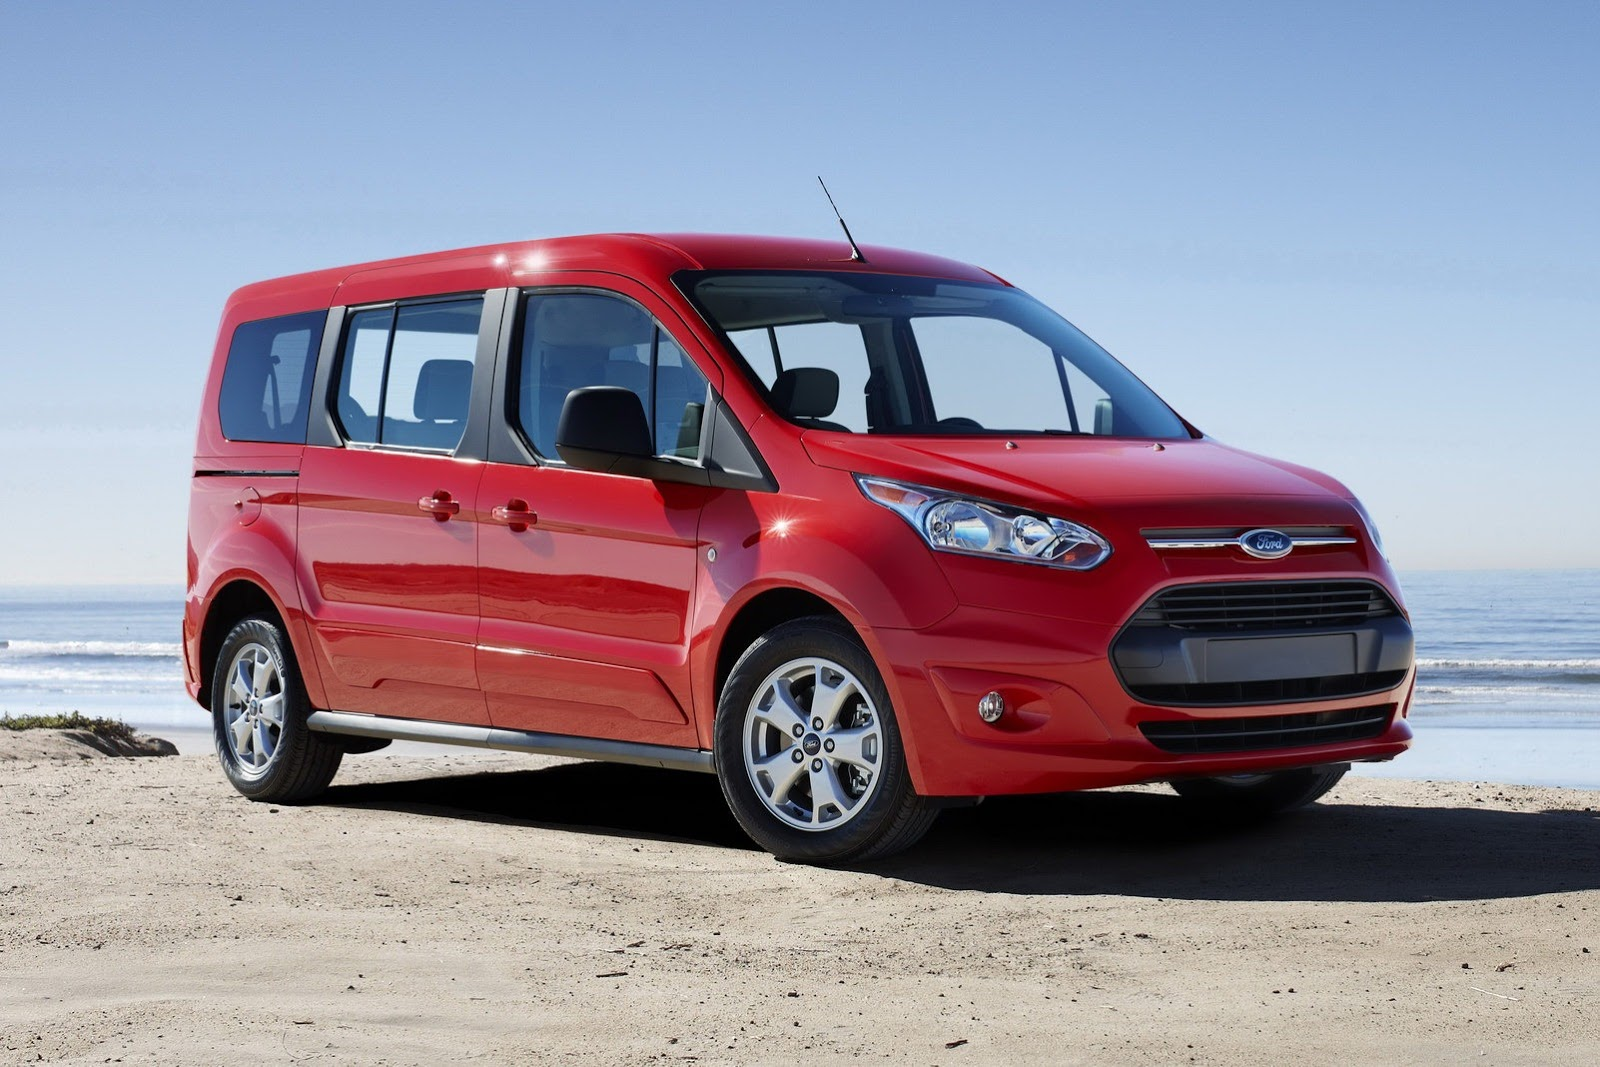 ford transit connect wagon from story image download free Wallpaper